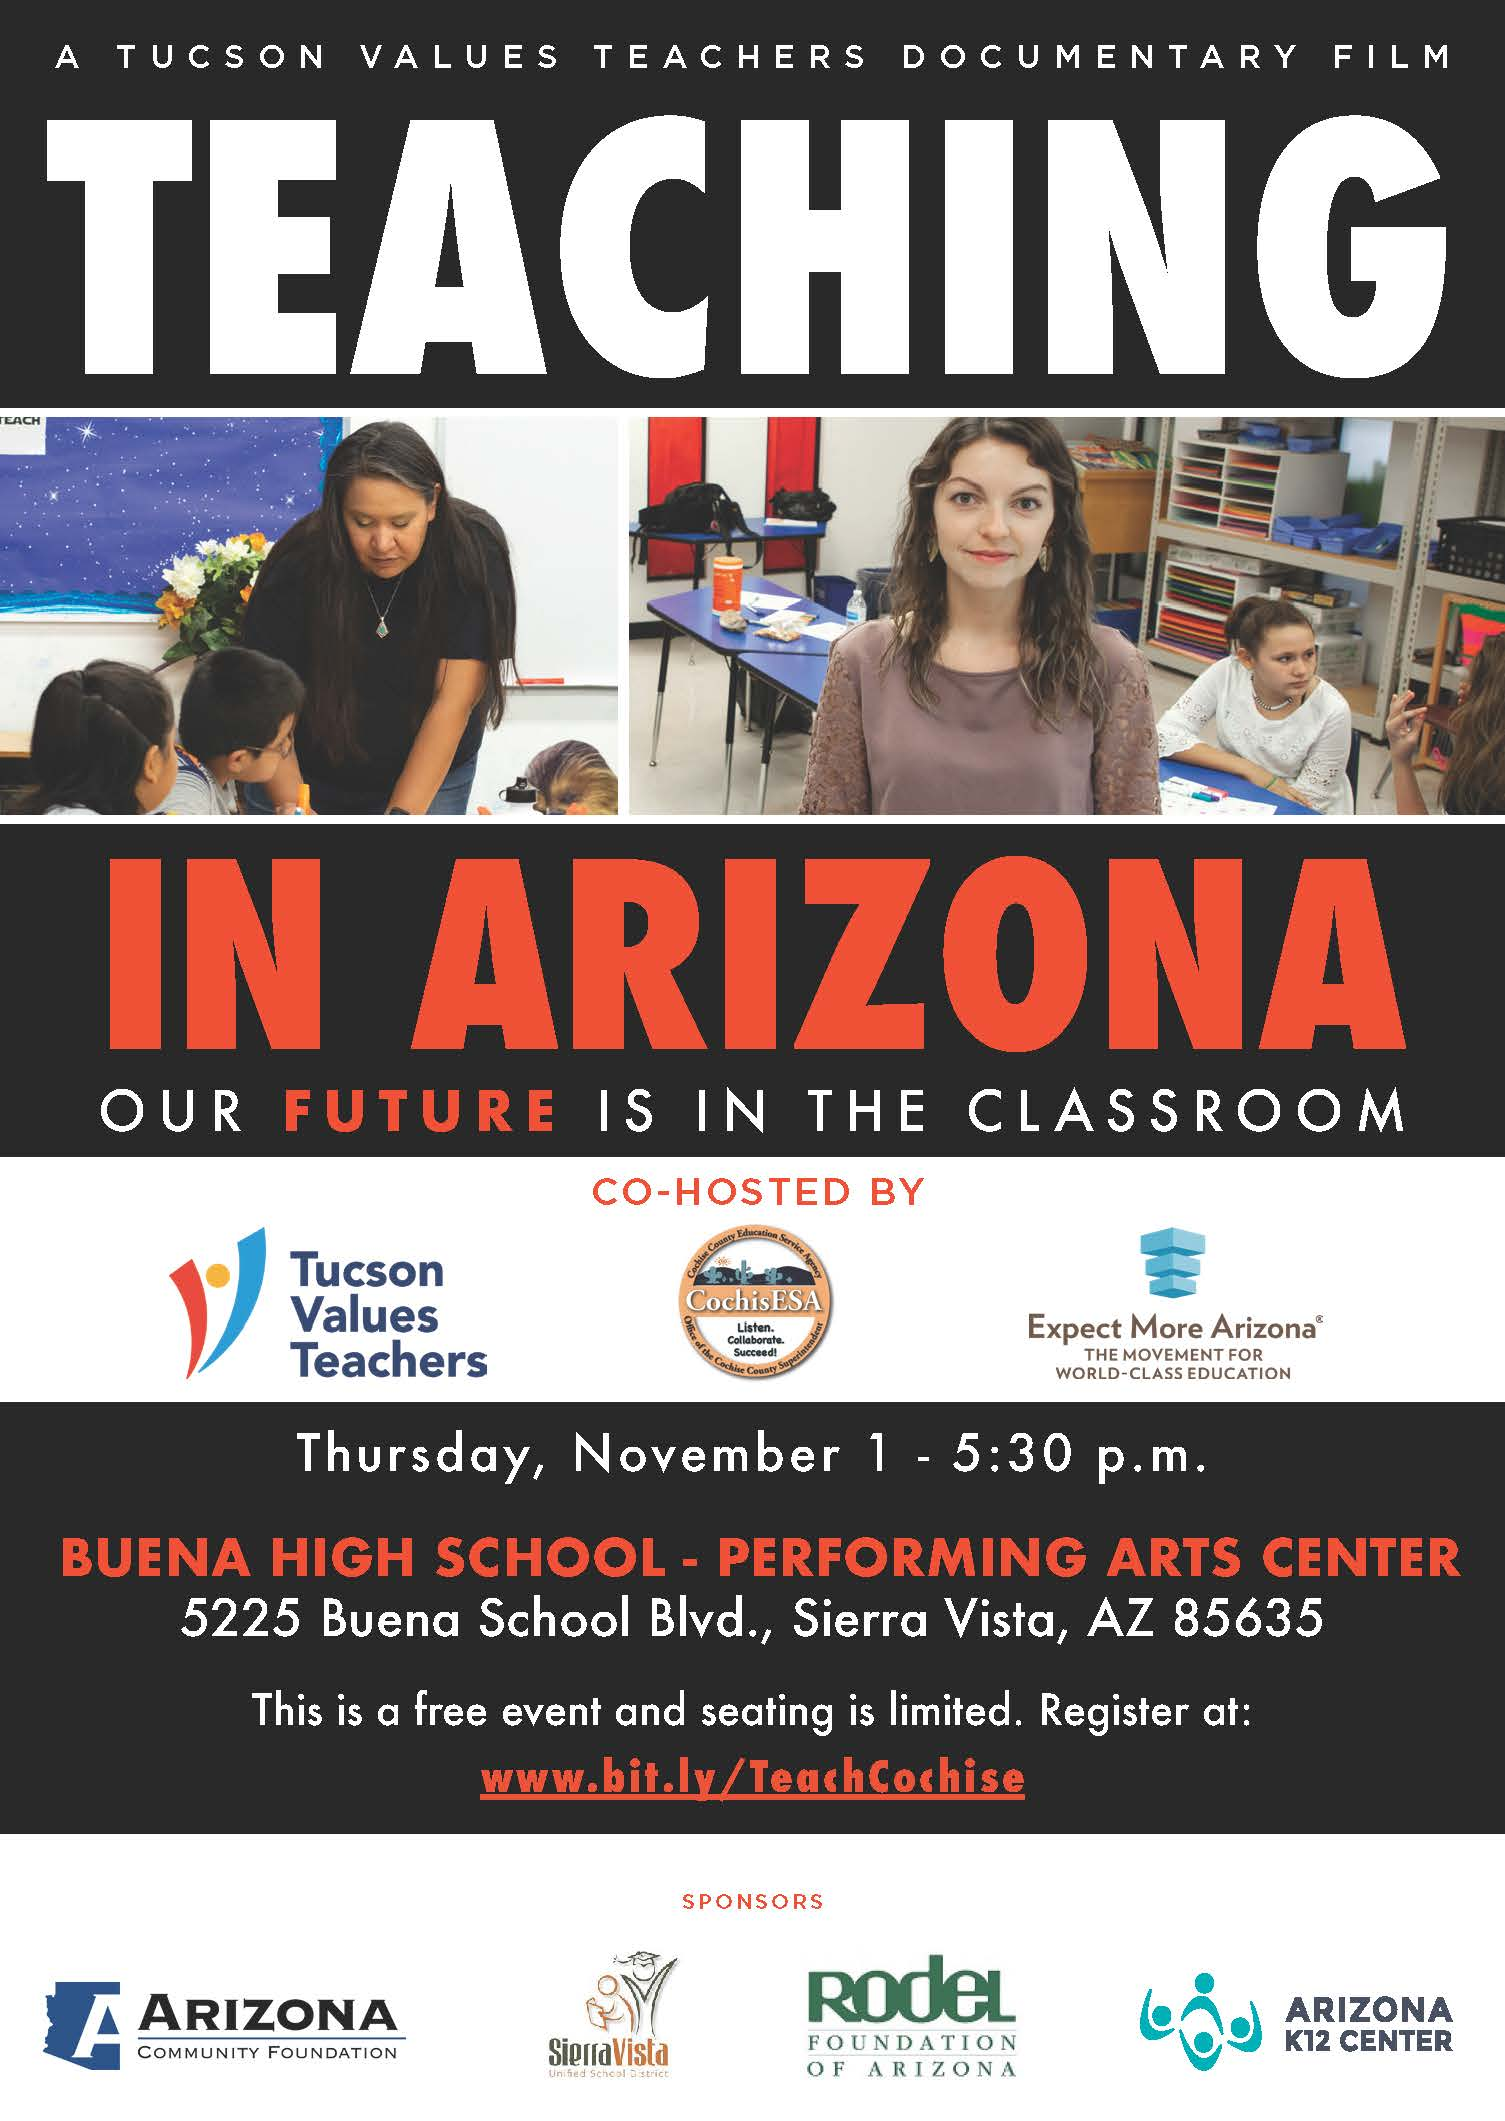 Flyer For Teaching In Arizona Movie Screening In Cochise County